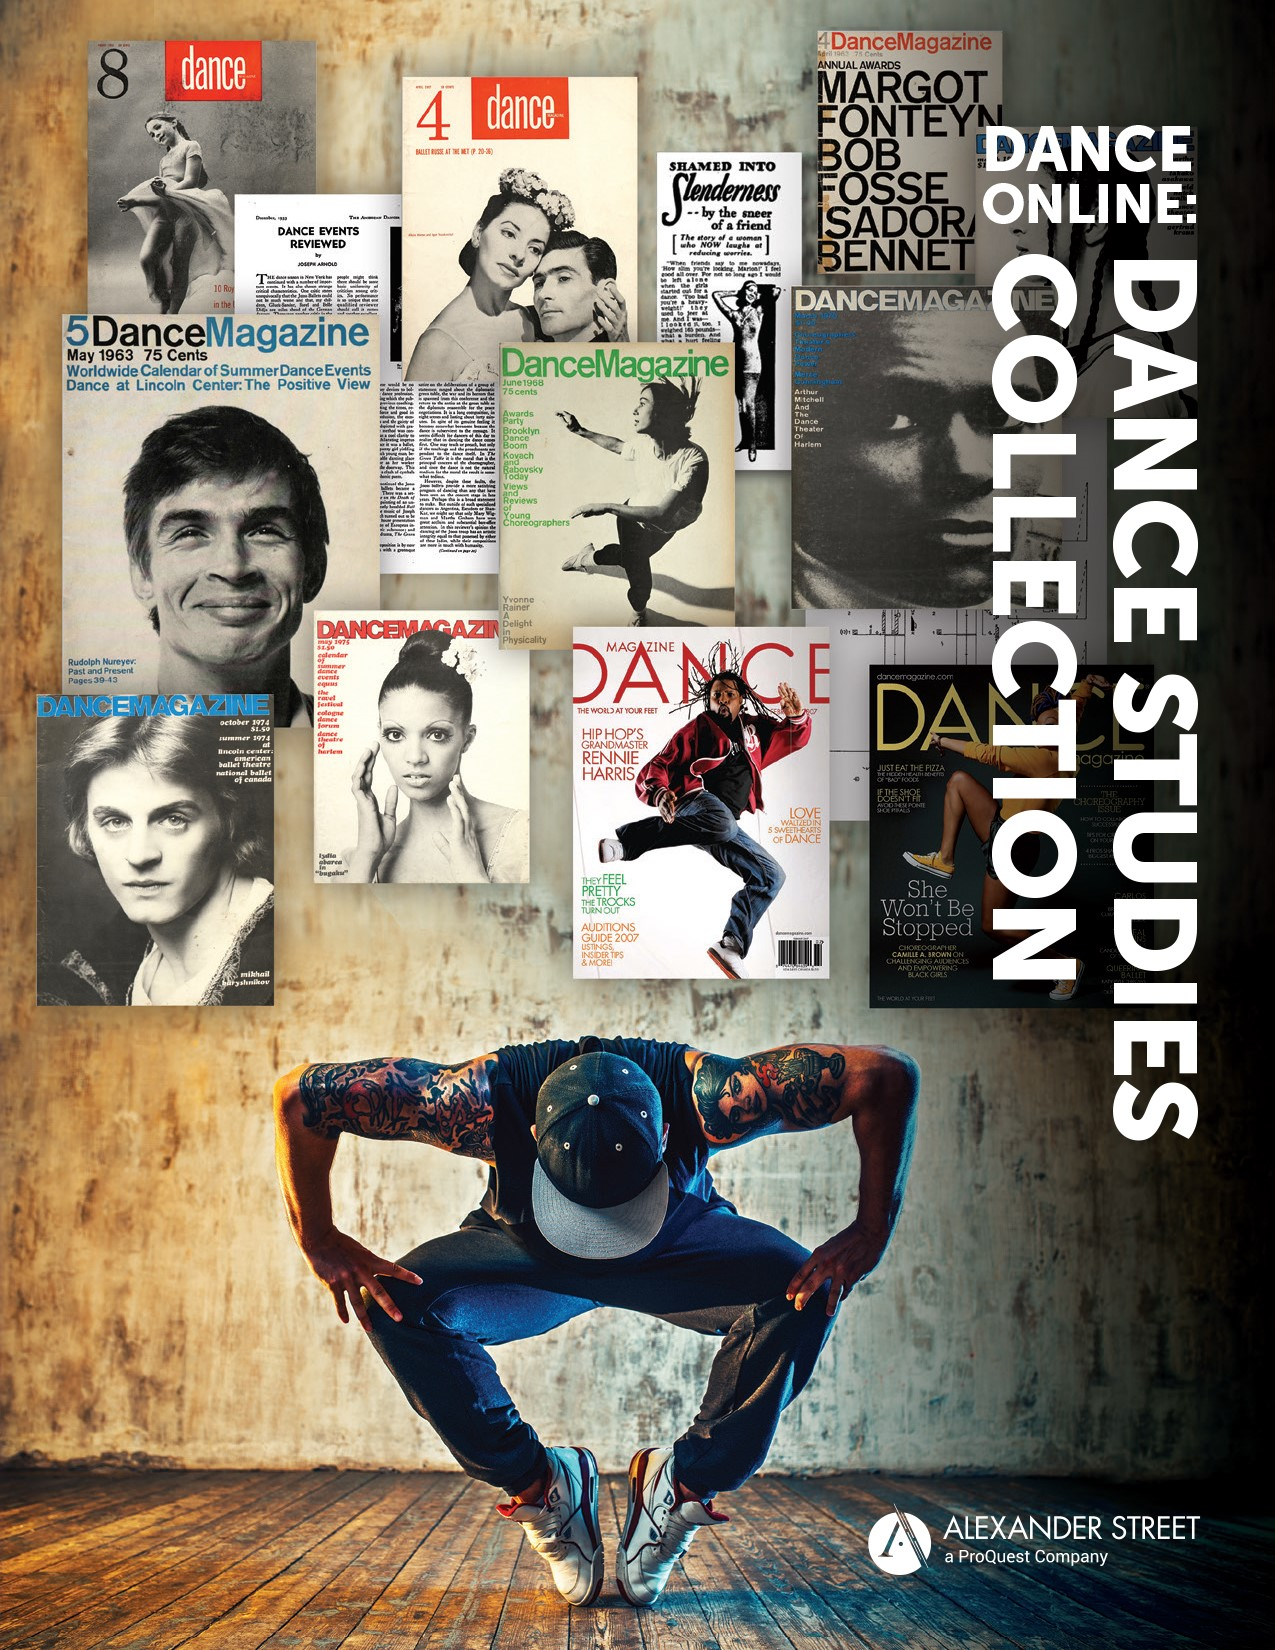 Dance Online: Dance Studies Collection